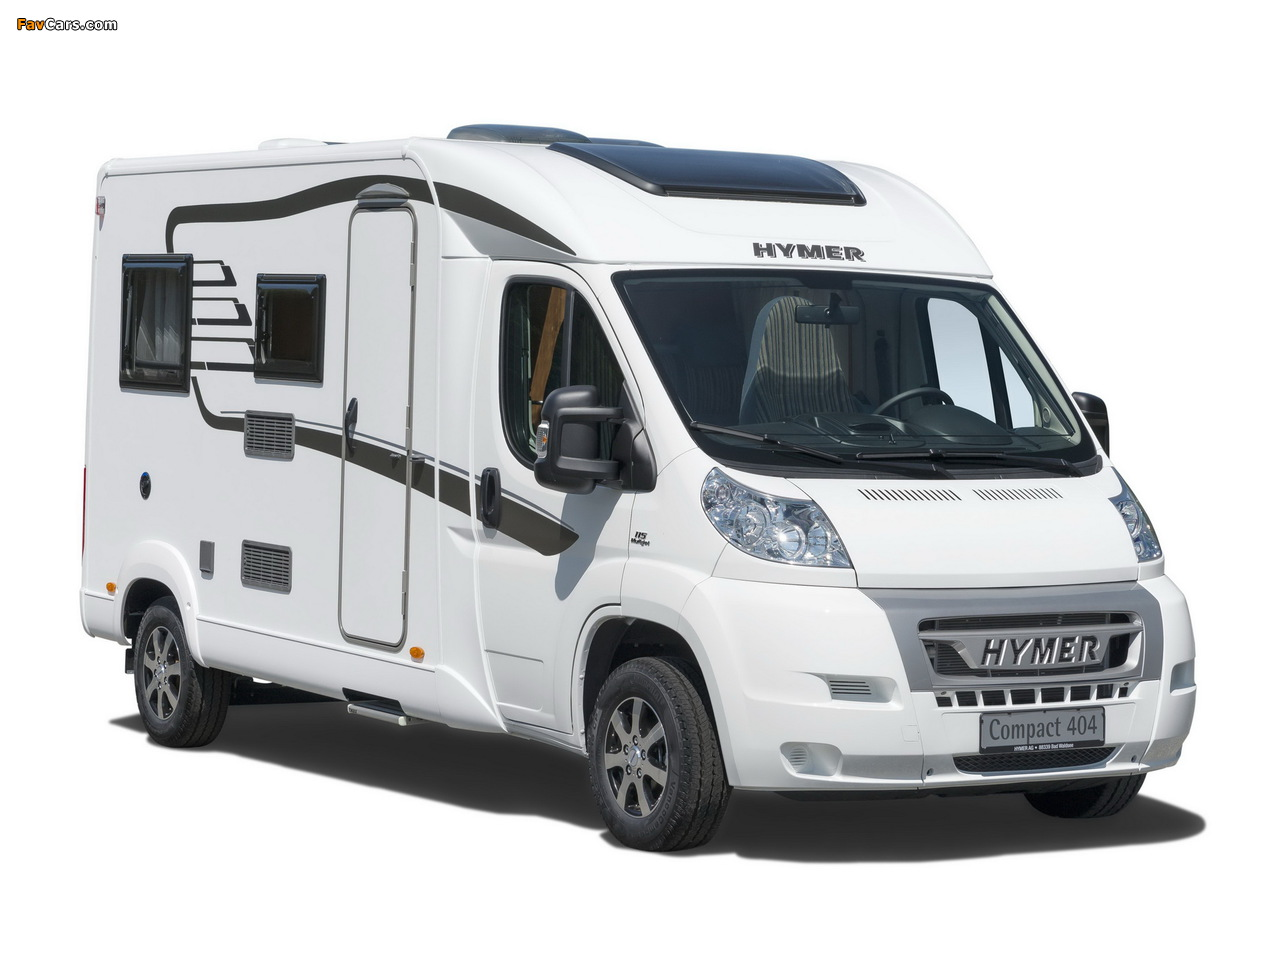 Hymer Compact 404 2013 wallpapers (1280 x 960)